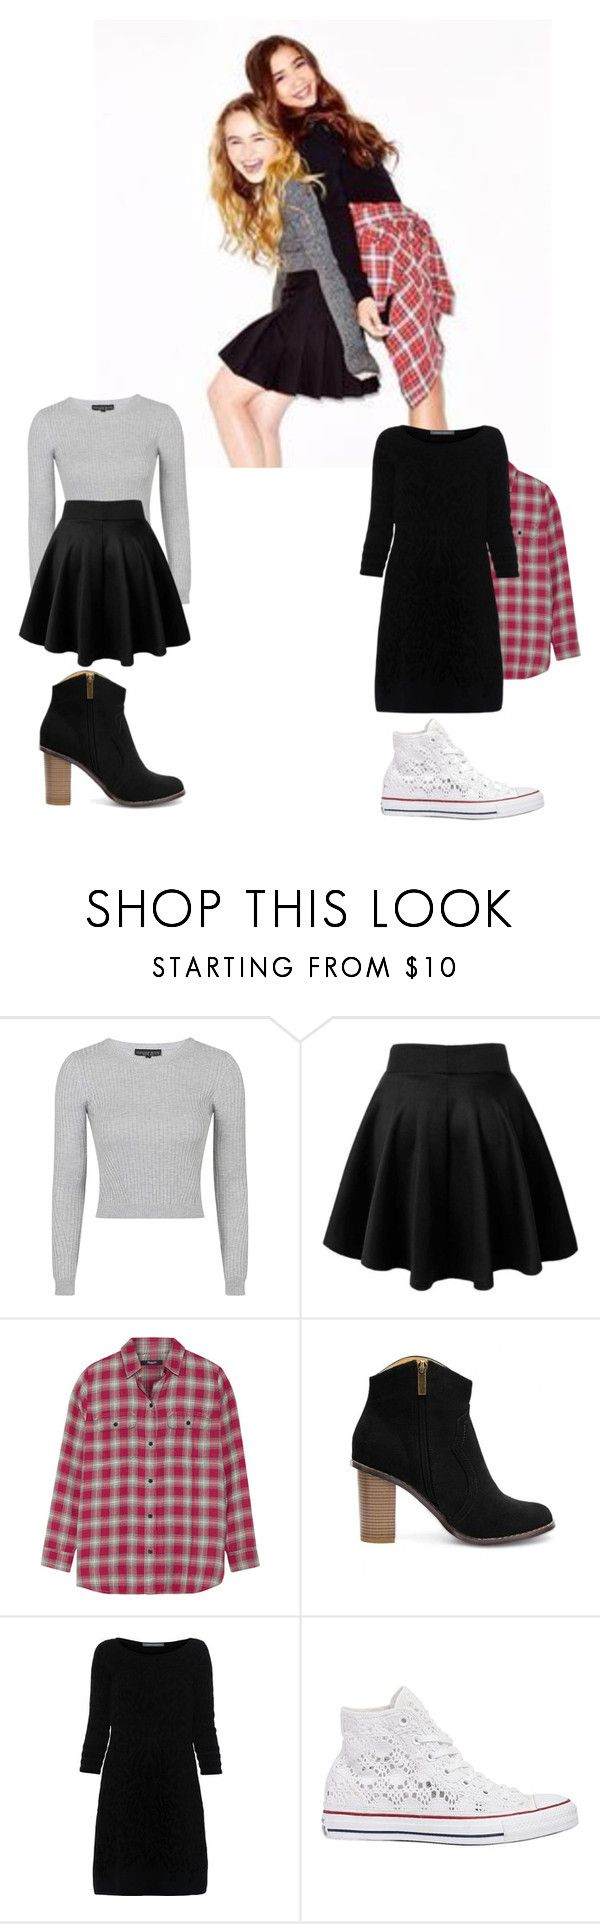 """Maya hart and riley matthews"" by mqweber ❤ liked on Polyvore featuring Topshop, Madewell, Alberta Ferretti, Converse, women's clothing, women's fashion, women, female, woman and misses"